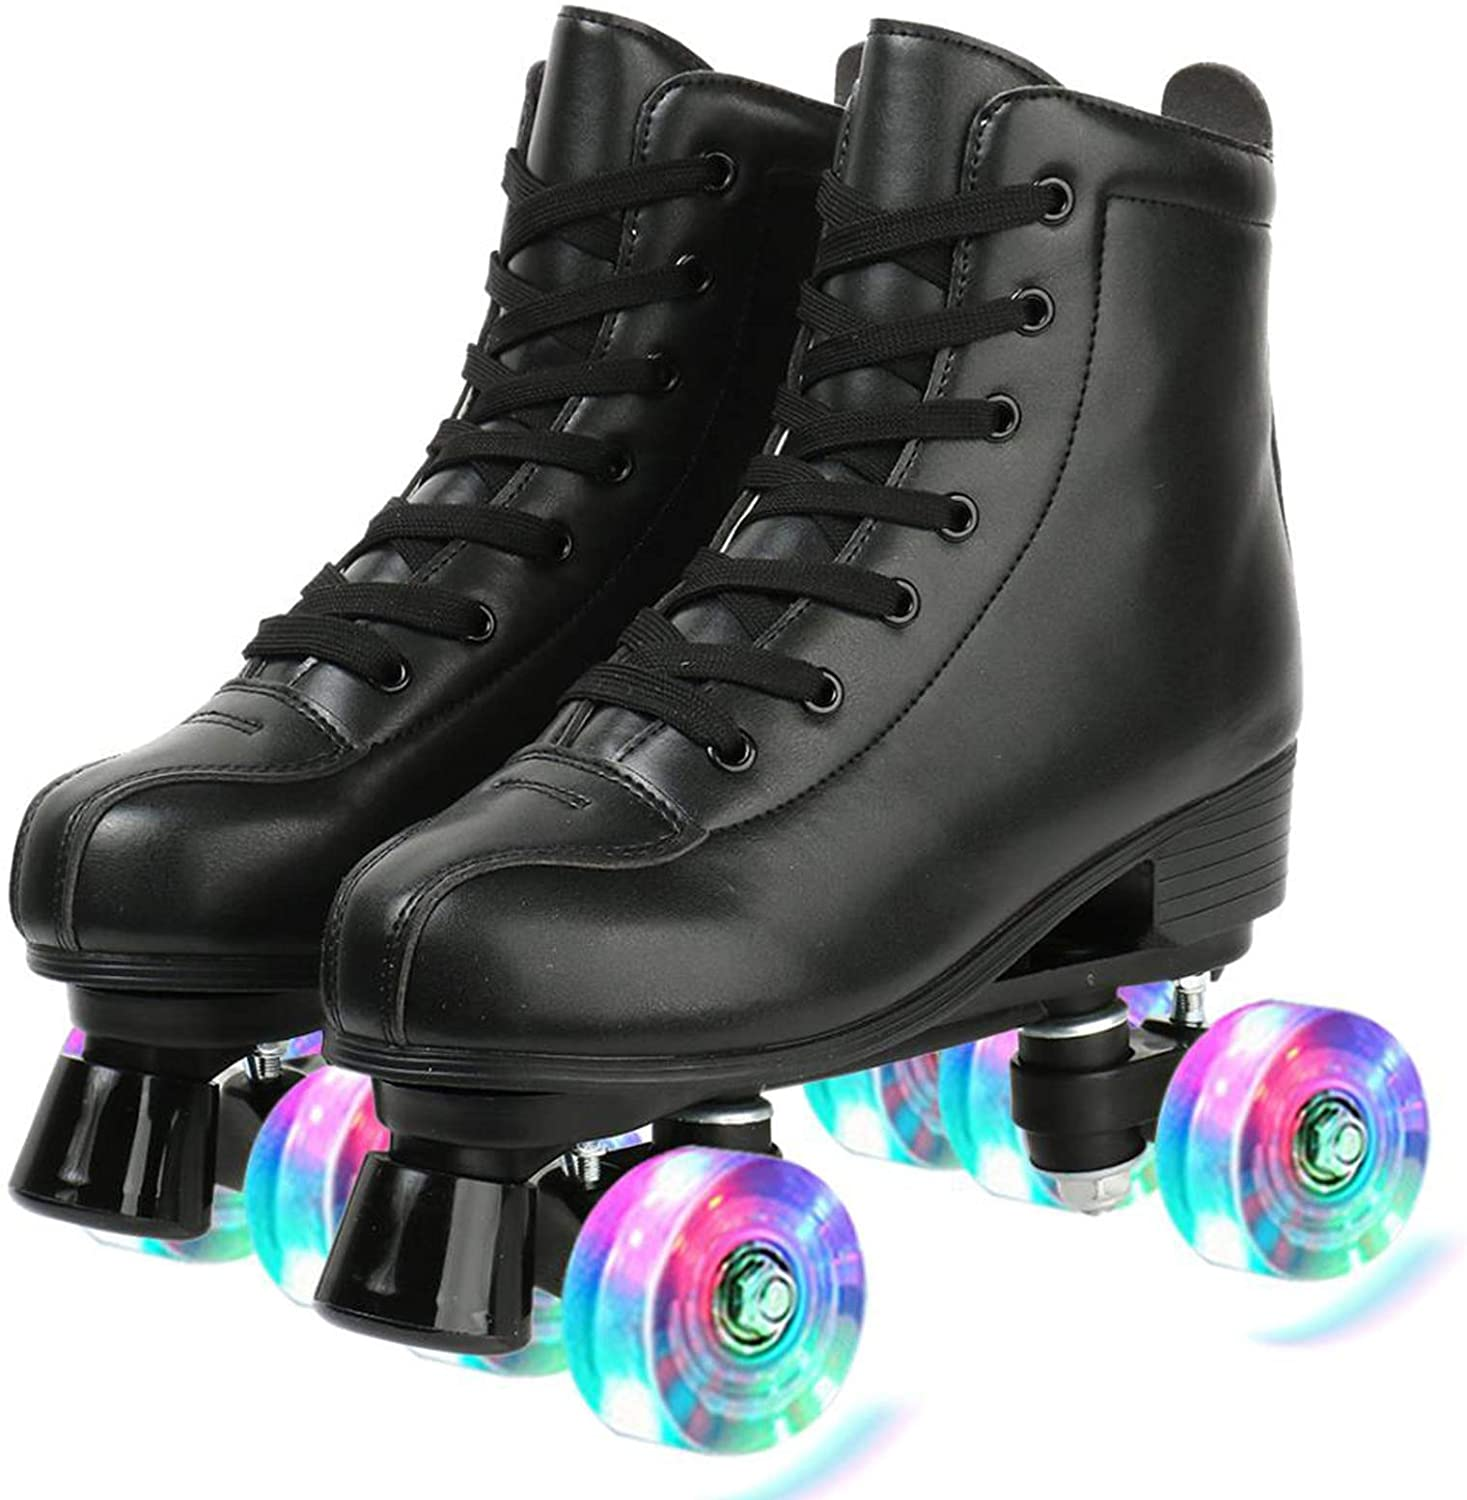 Womens Roller Skates PU Adjustable Leather Free shipping on posting reviews Light Shiny specialty shop